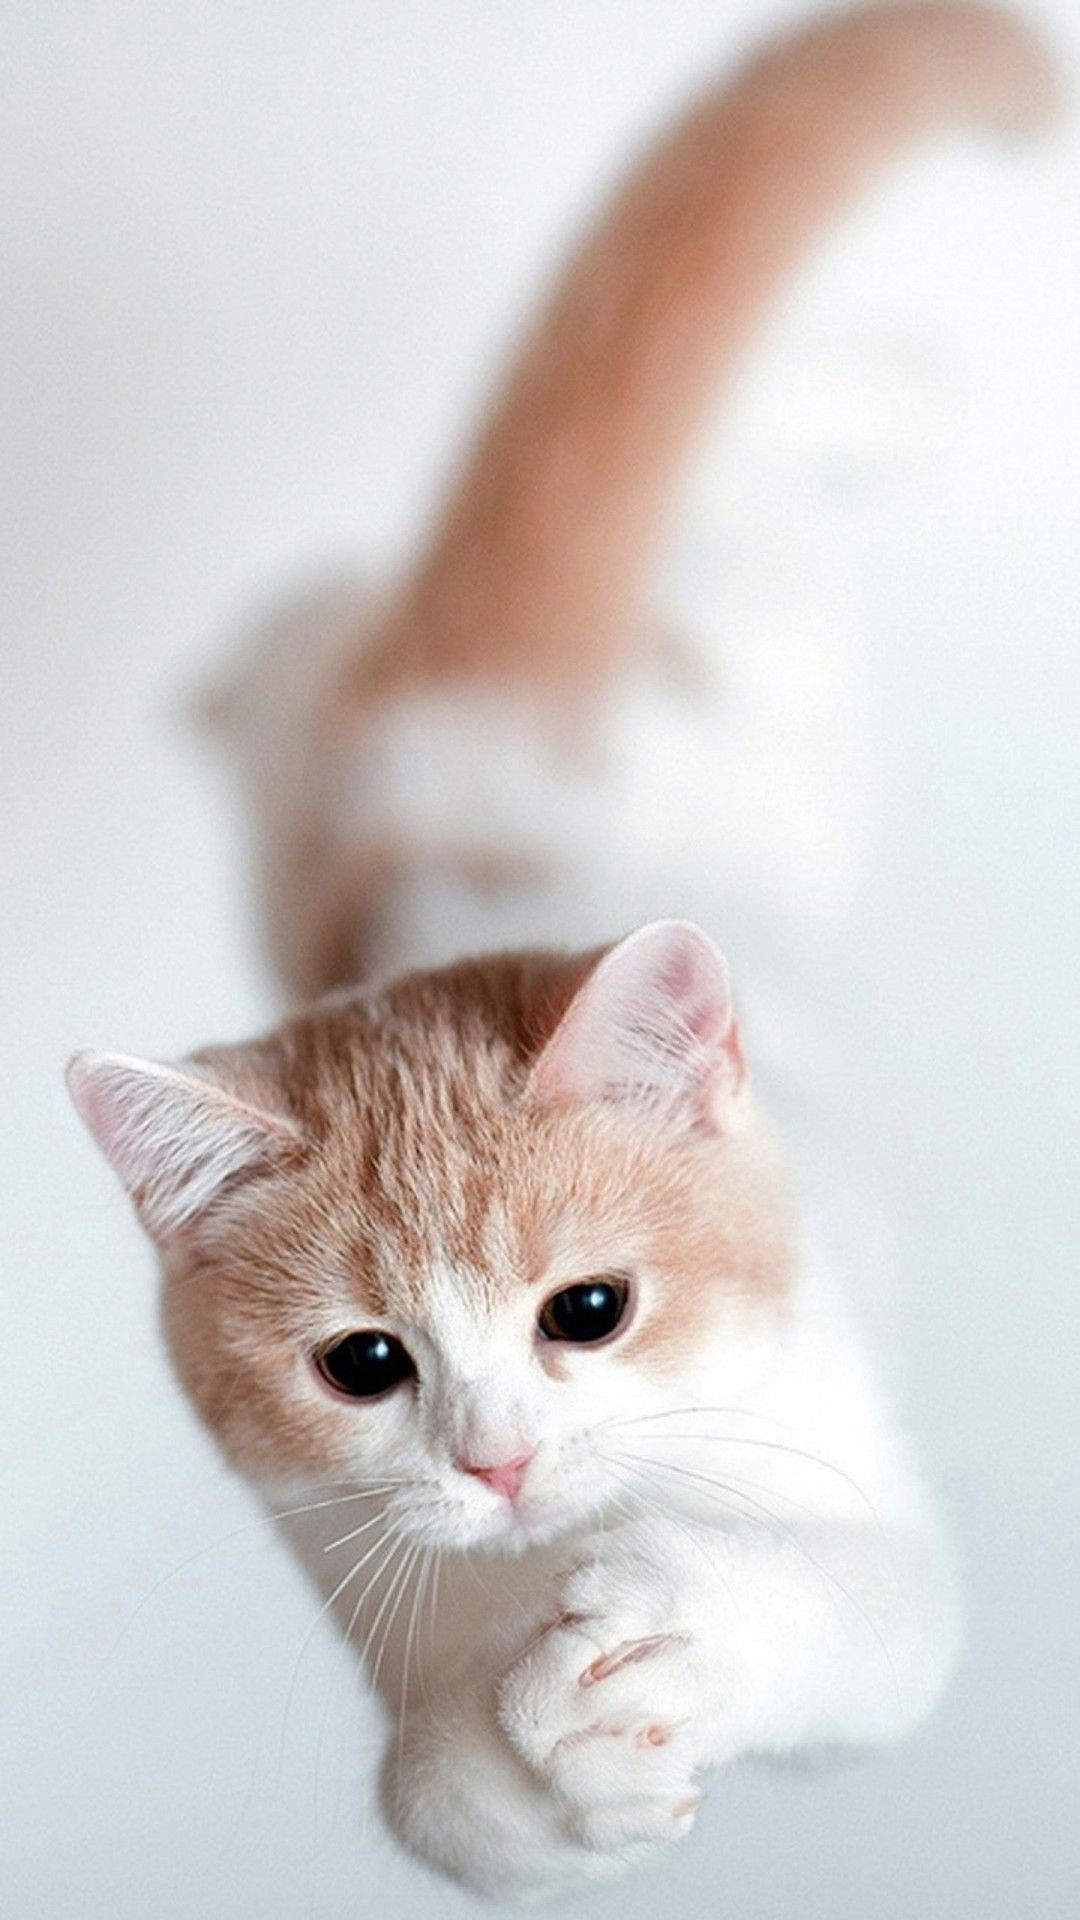 Cat Wallpaper Iphone Kitties Cats Kittens Cute Cats